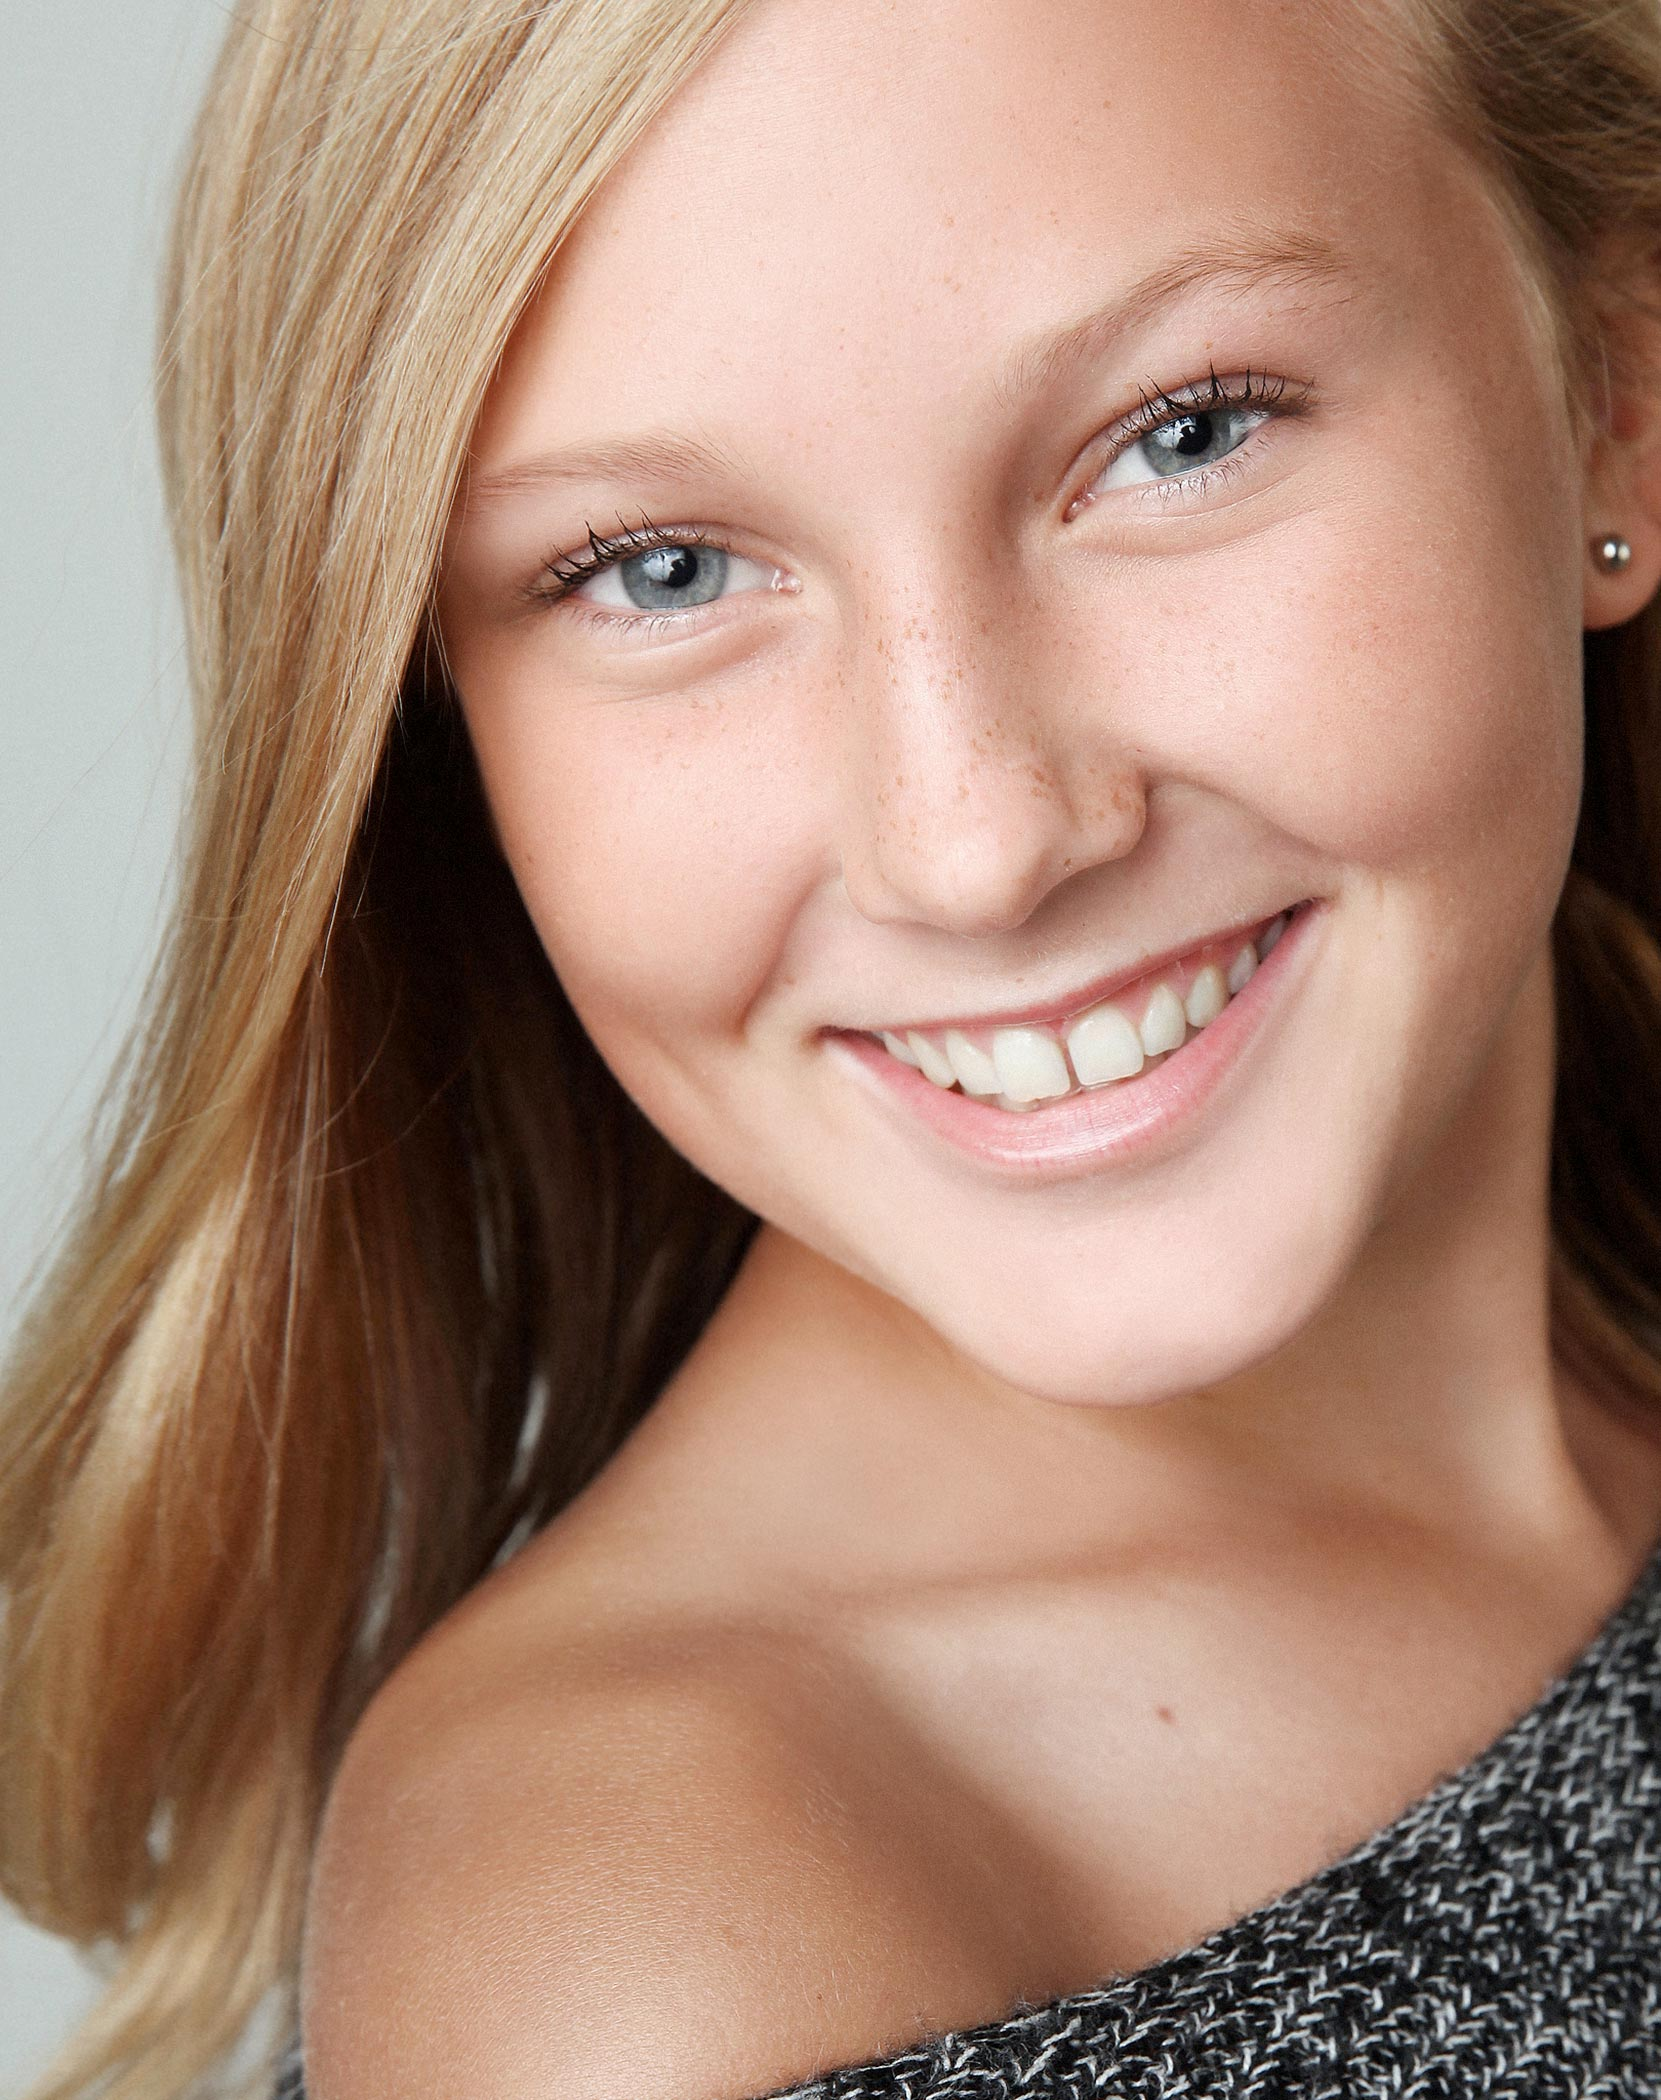 headshot-photographers-london-ontario-dancer-actor-child-studio-talent-kids